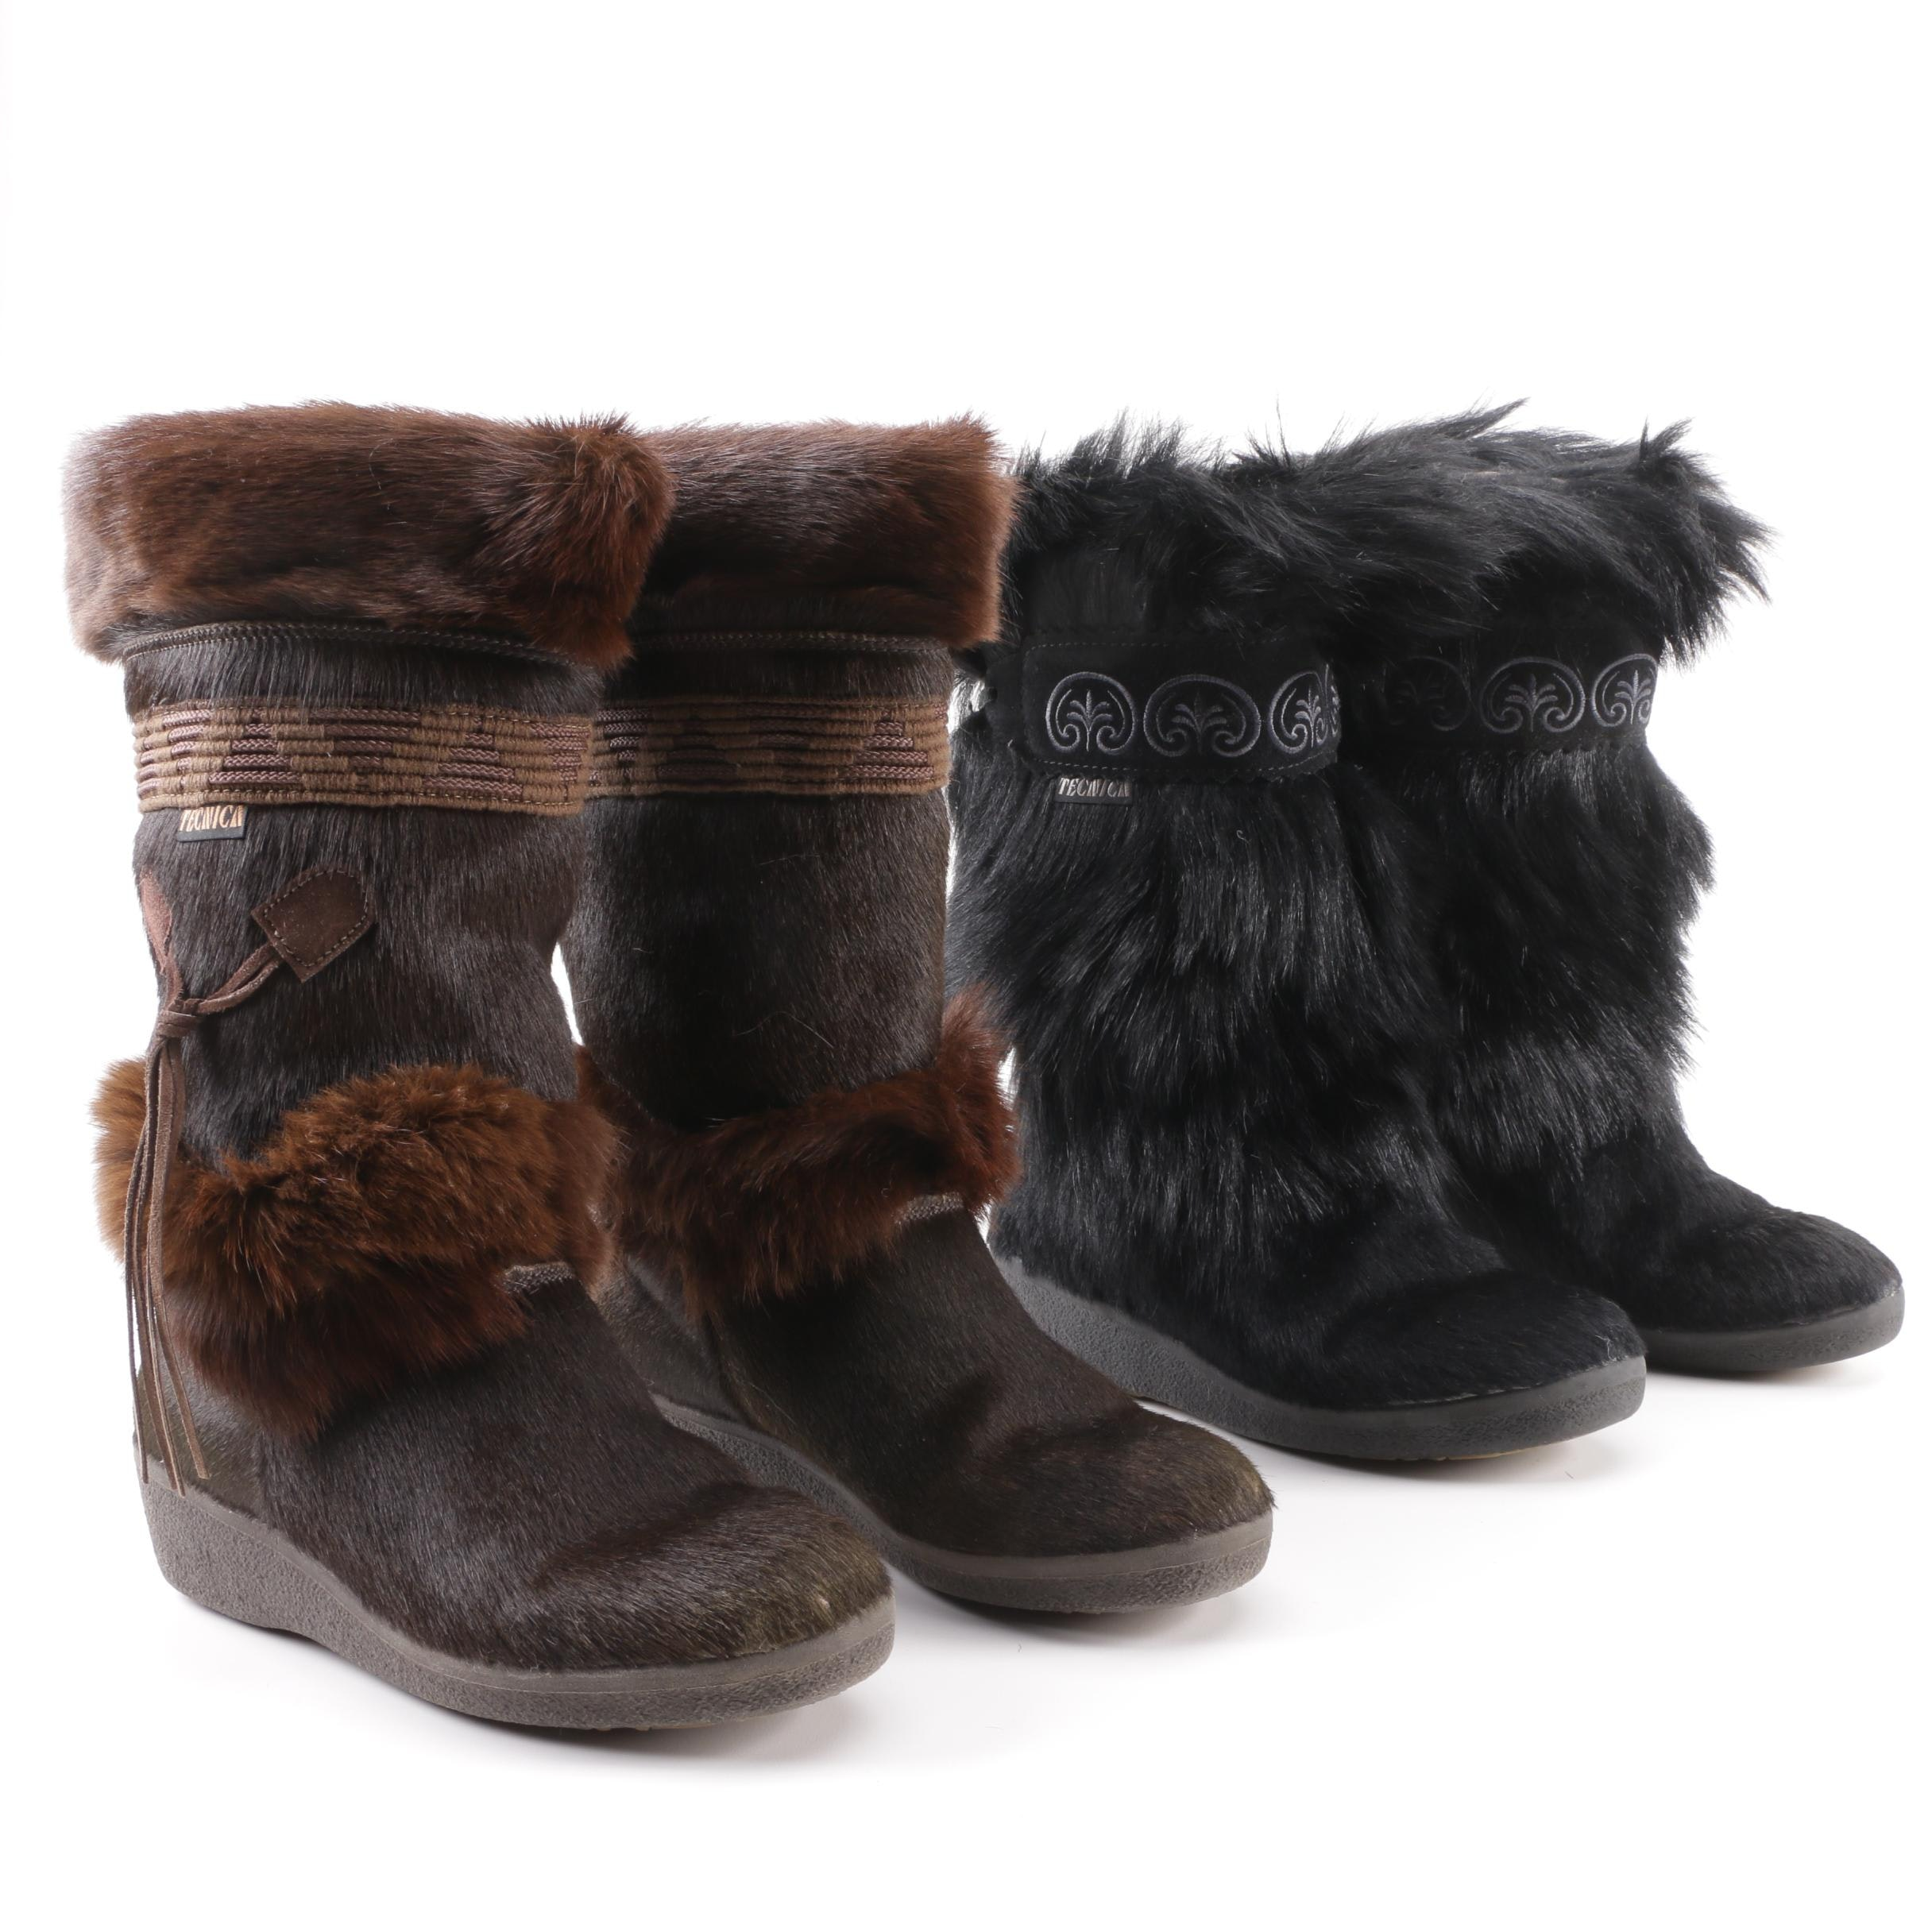 Women's Tecnica Black and Brown Goat Fur Winter Boots